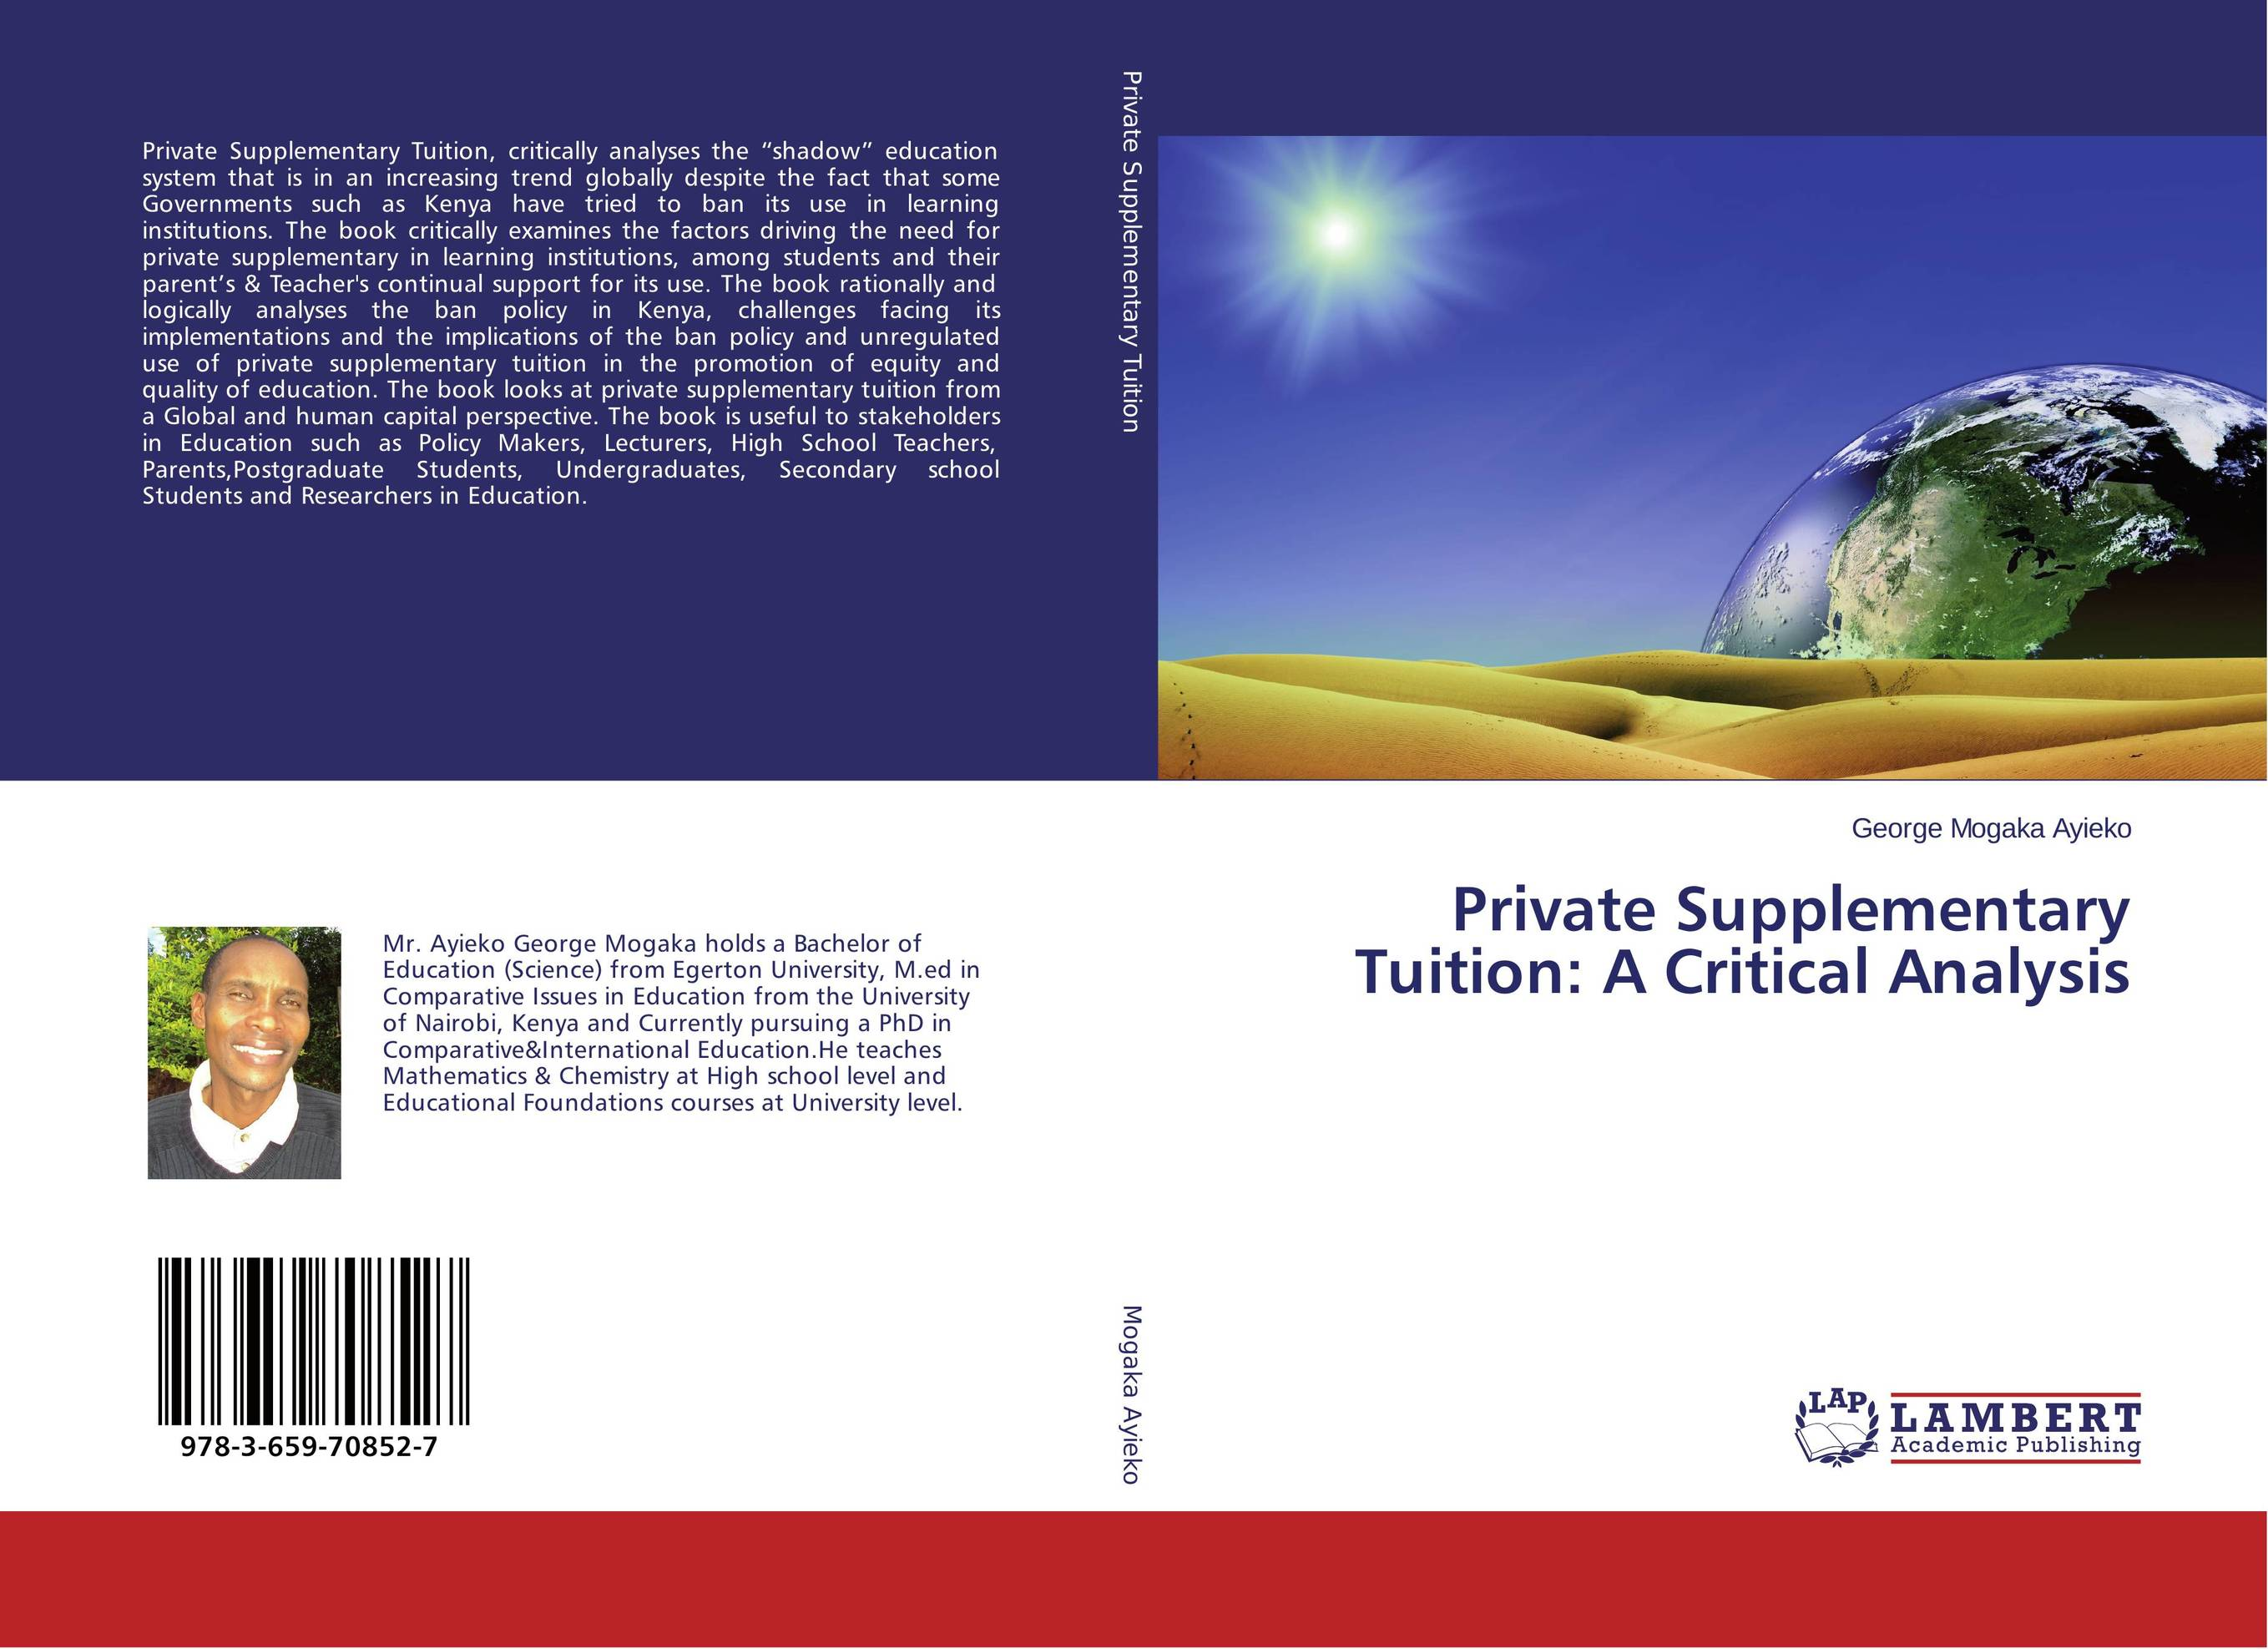 Private Supplementary Tuition: A Critical Analysis